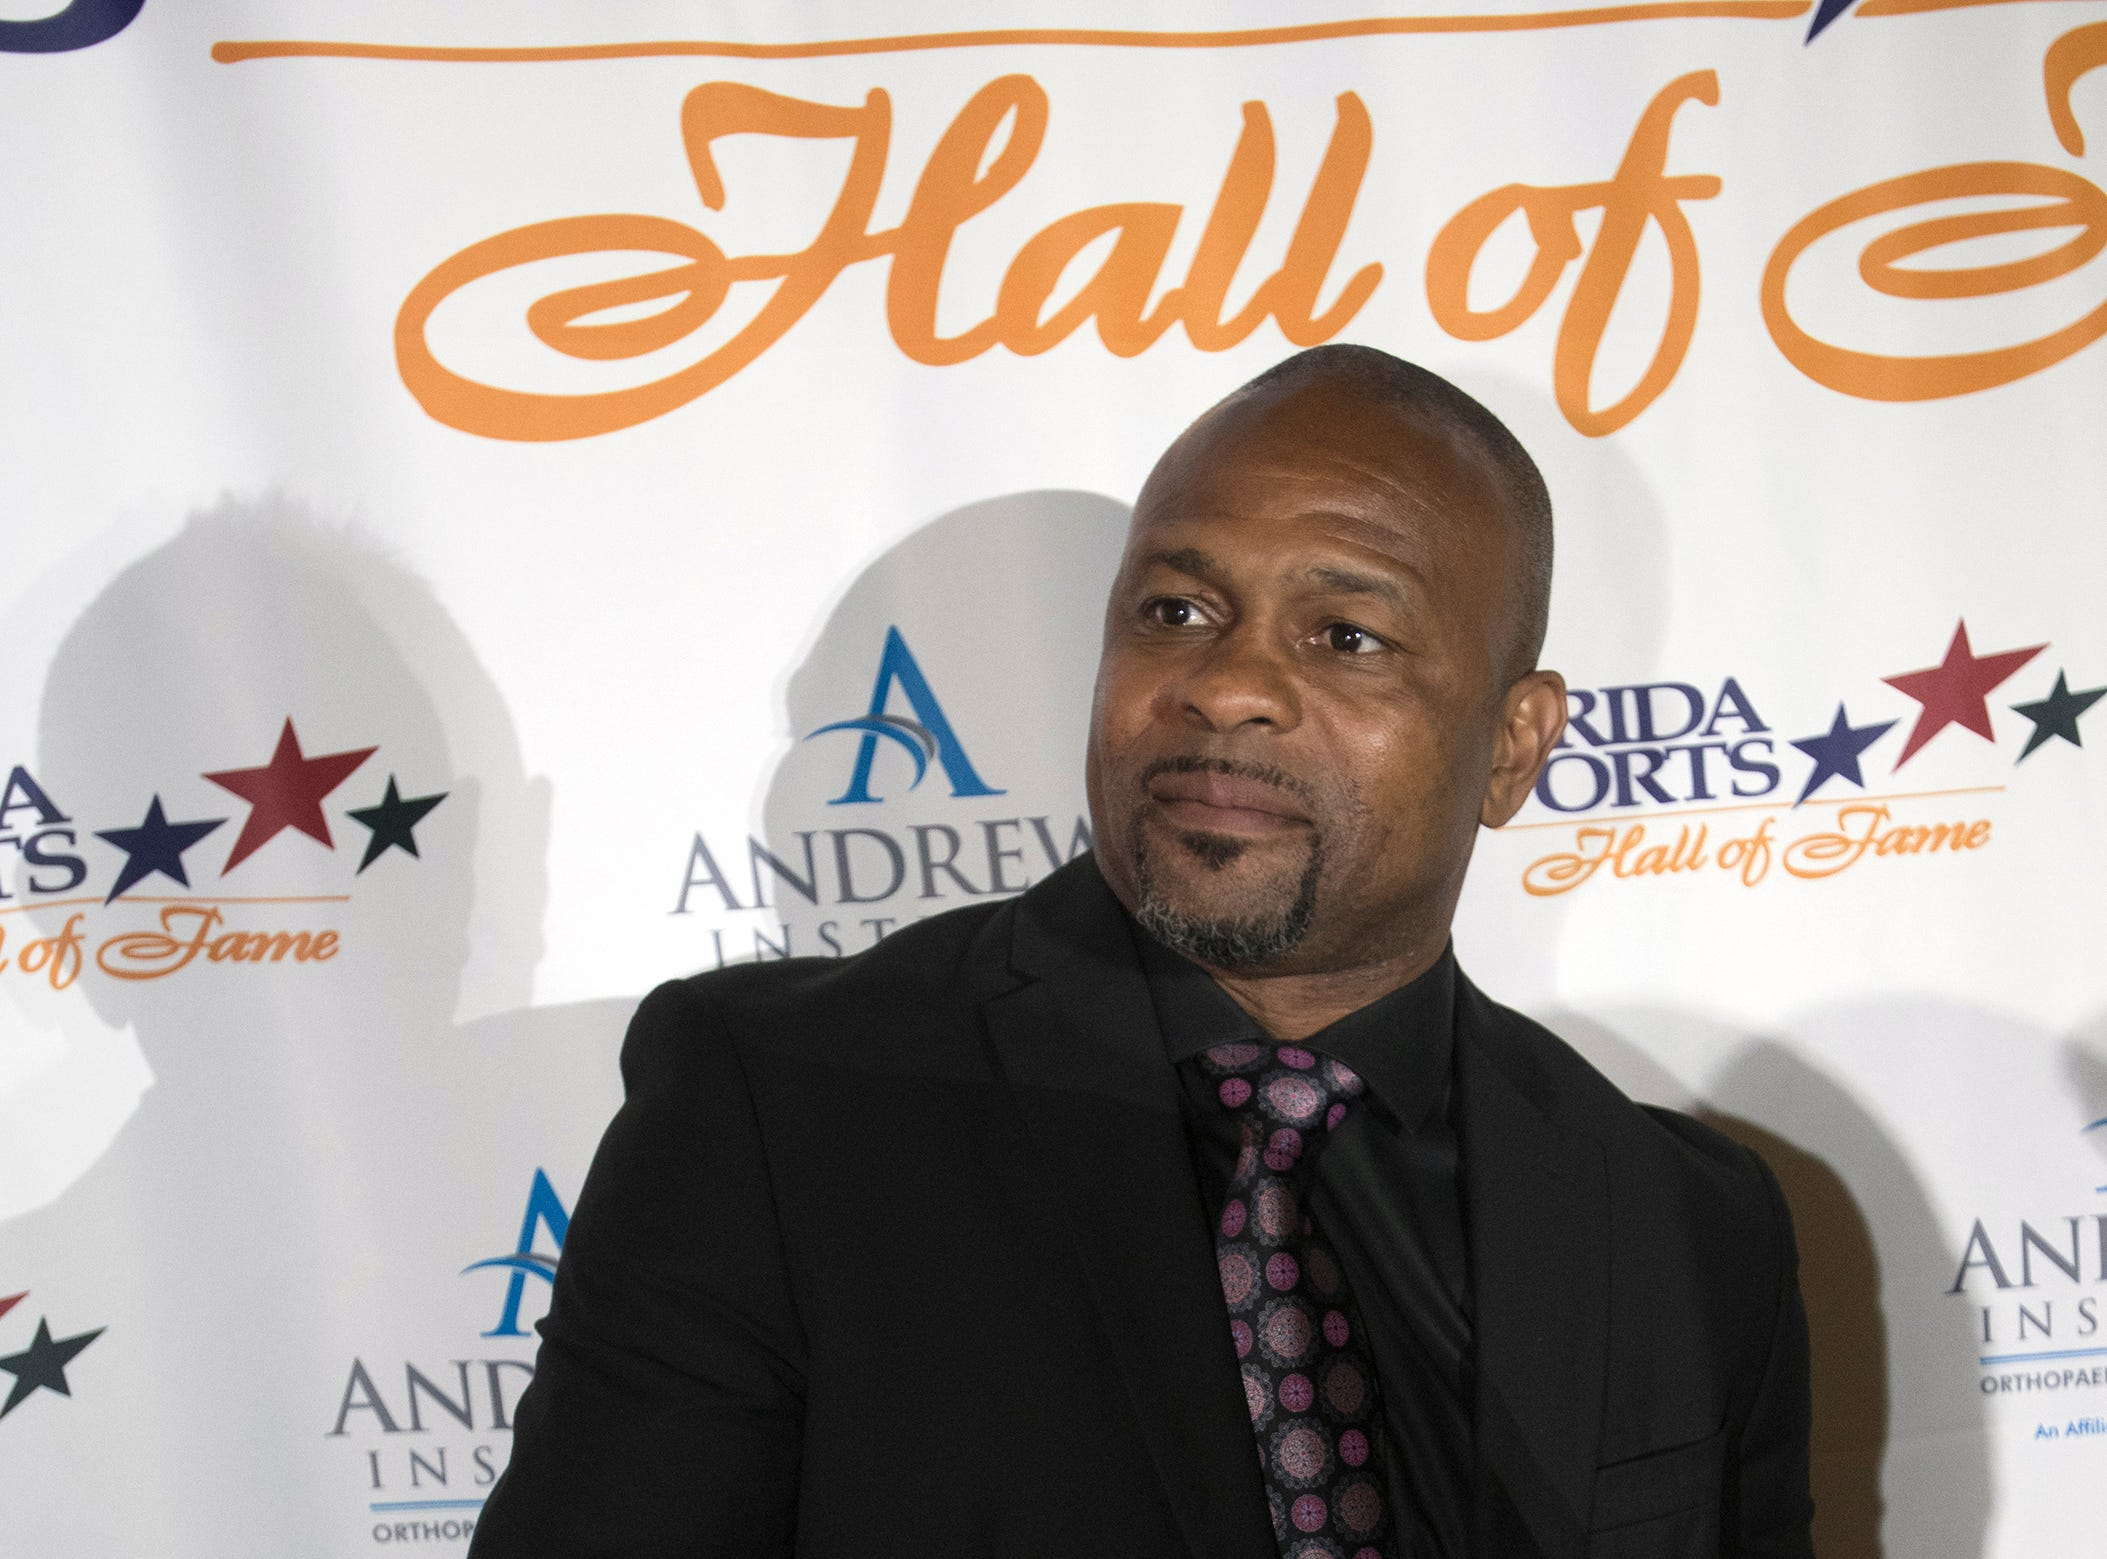 Pensacola boxer Roy Jones, Jr. poses for photographs before the start of Wednesday night's 2018 Florida Sports Hall of Fame Enshrinement Ceremony at the National Naval Aviation Museum.